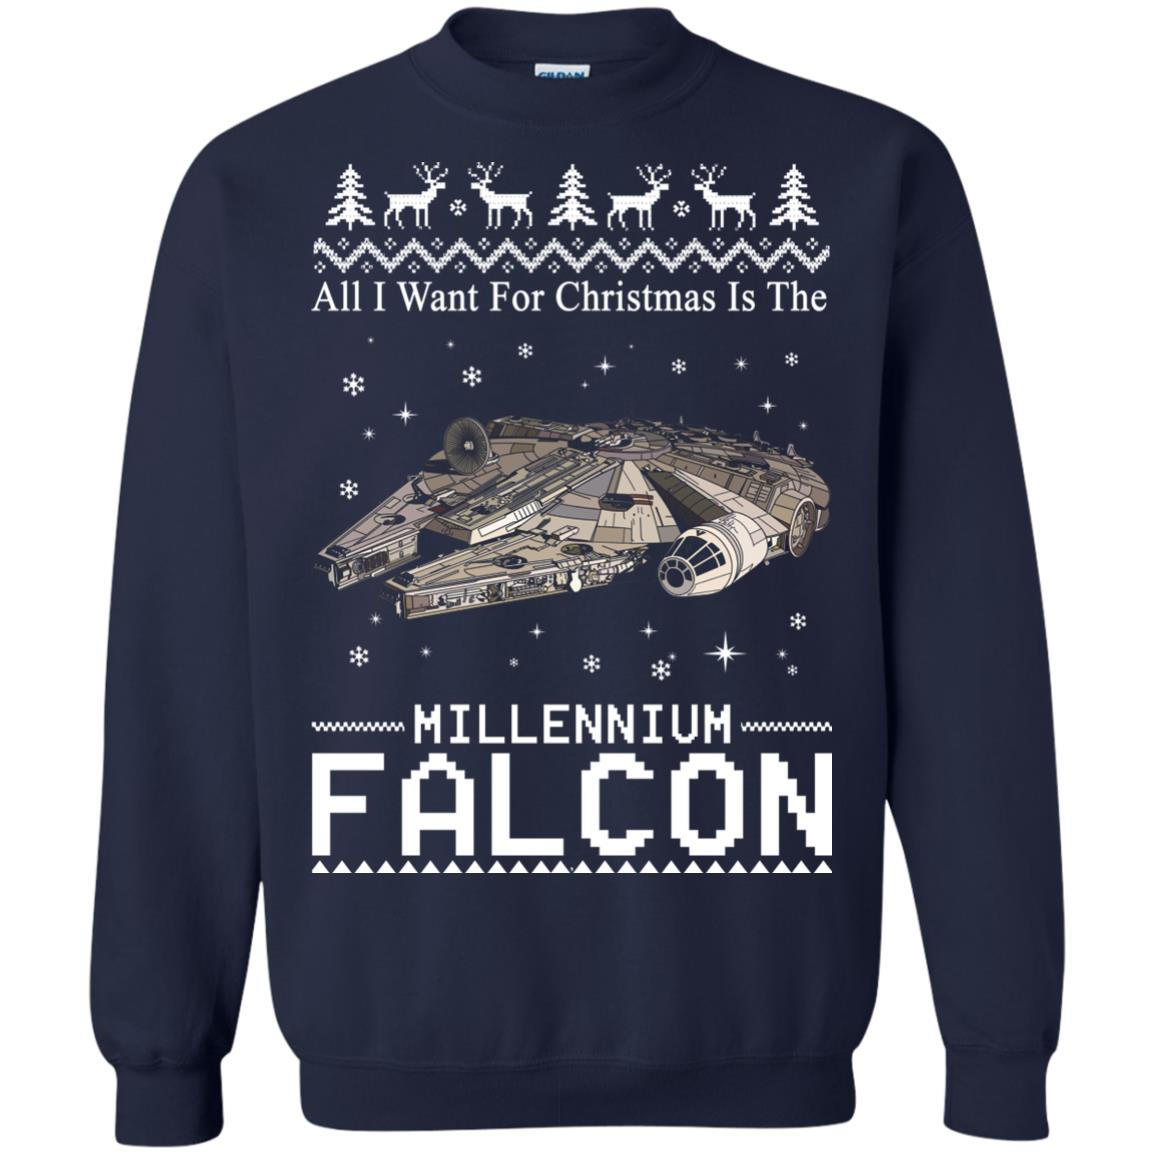 image 2139 - All I Want For Christmas is The Millennium Falcon Sweater, Ugly Sweatshirt